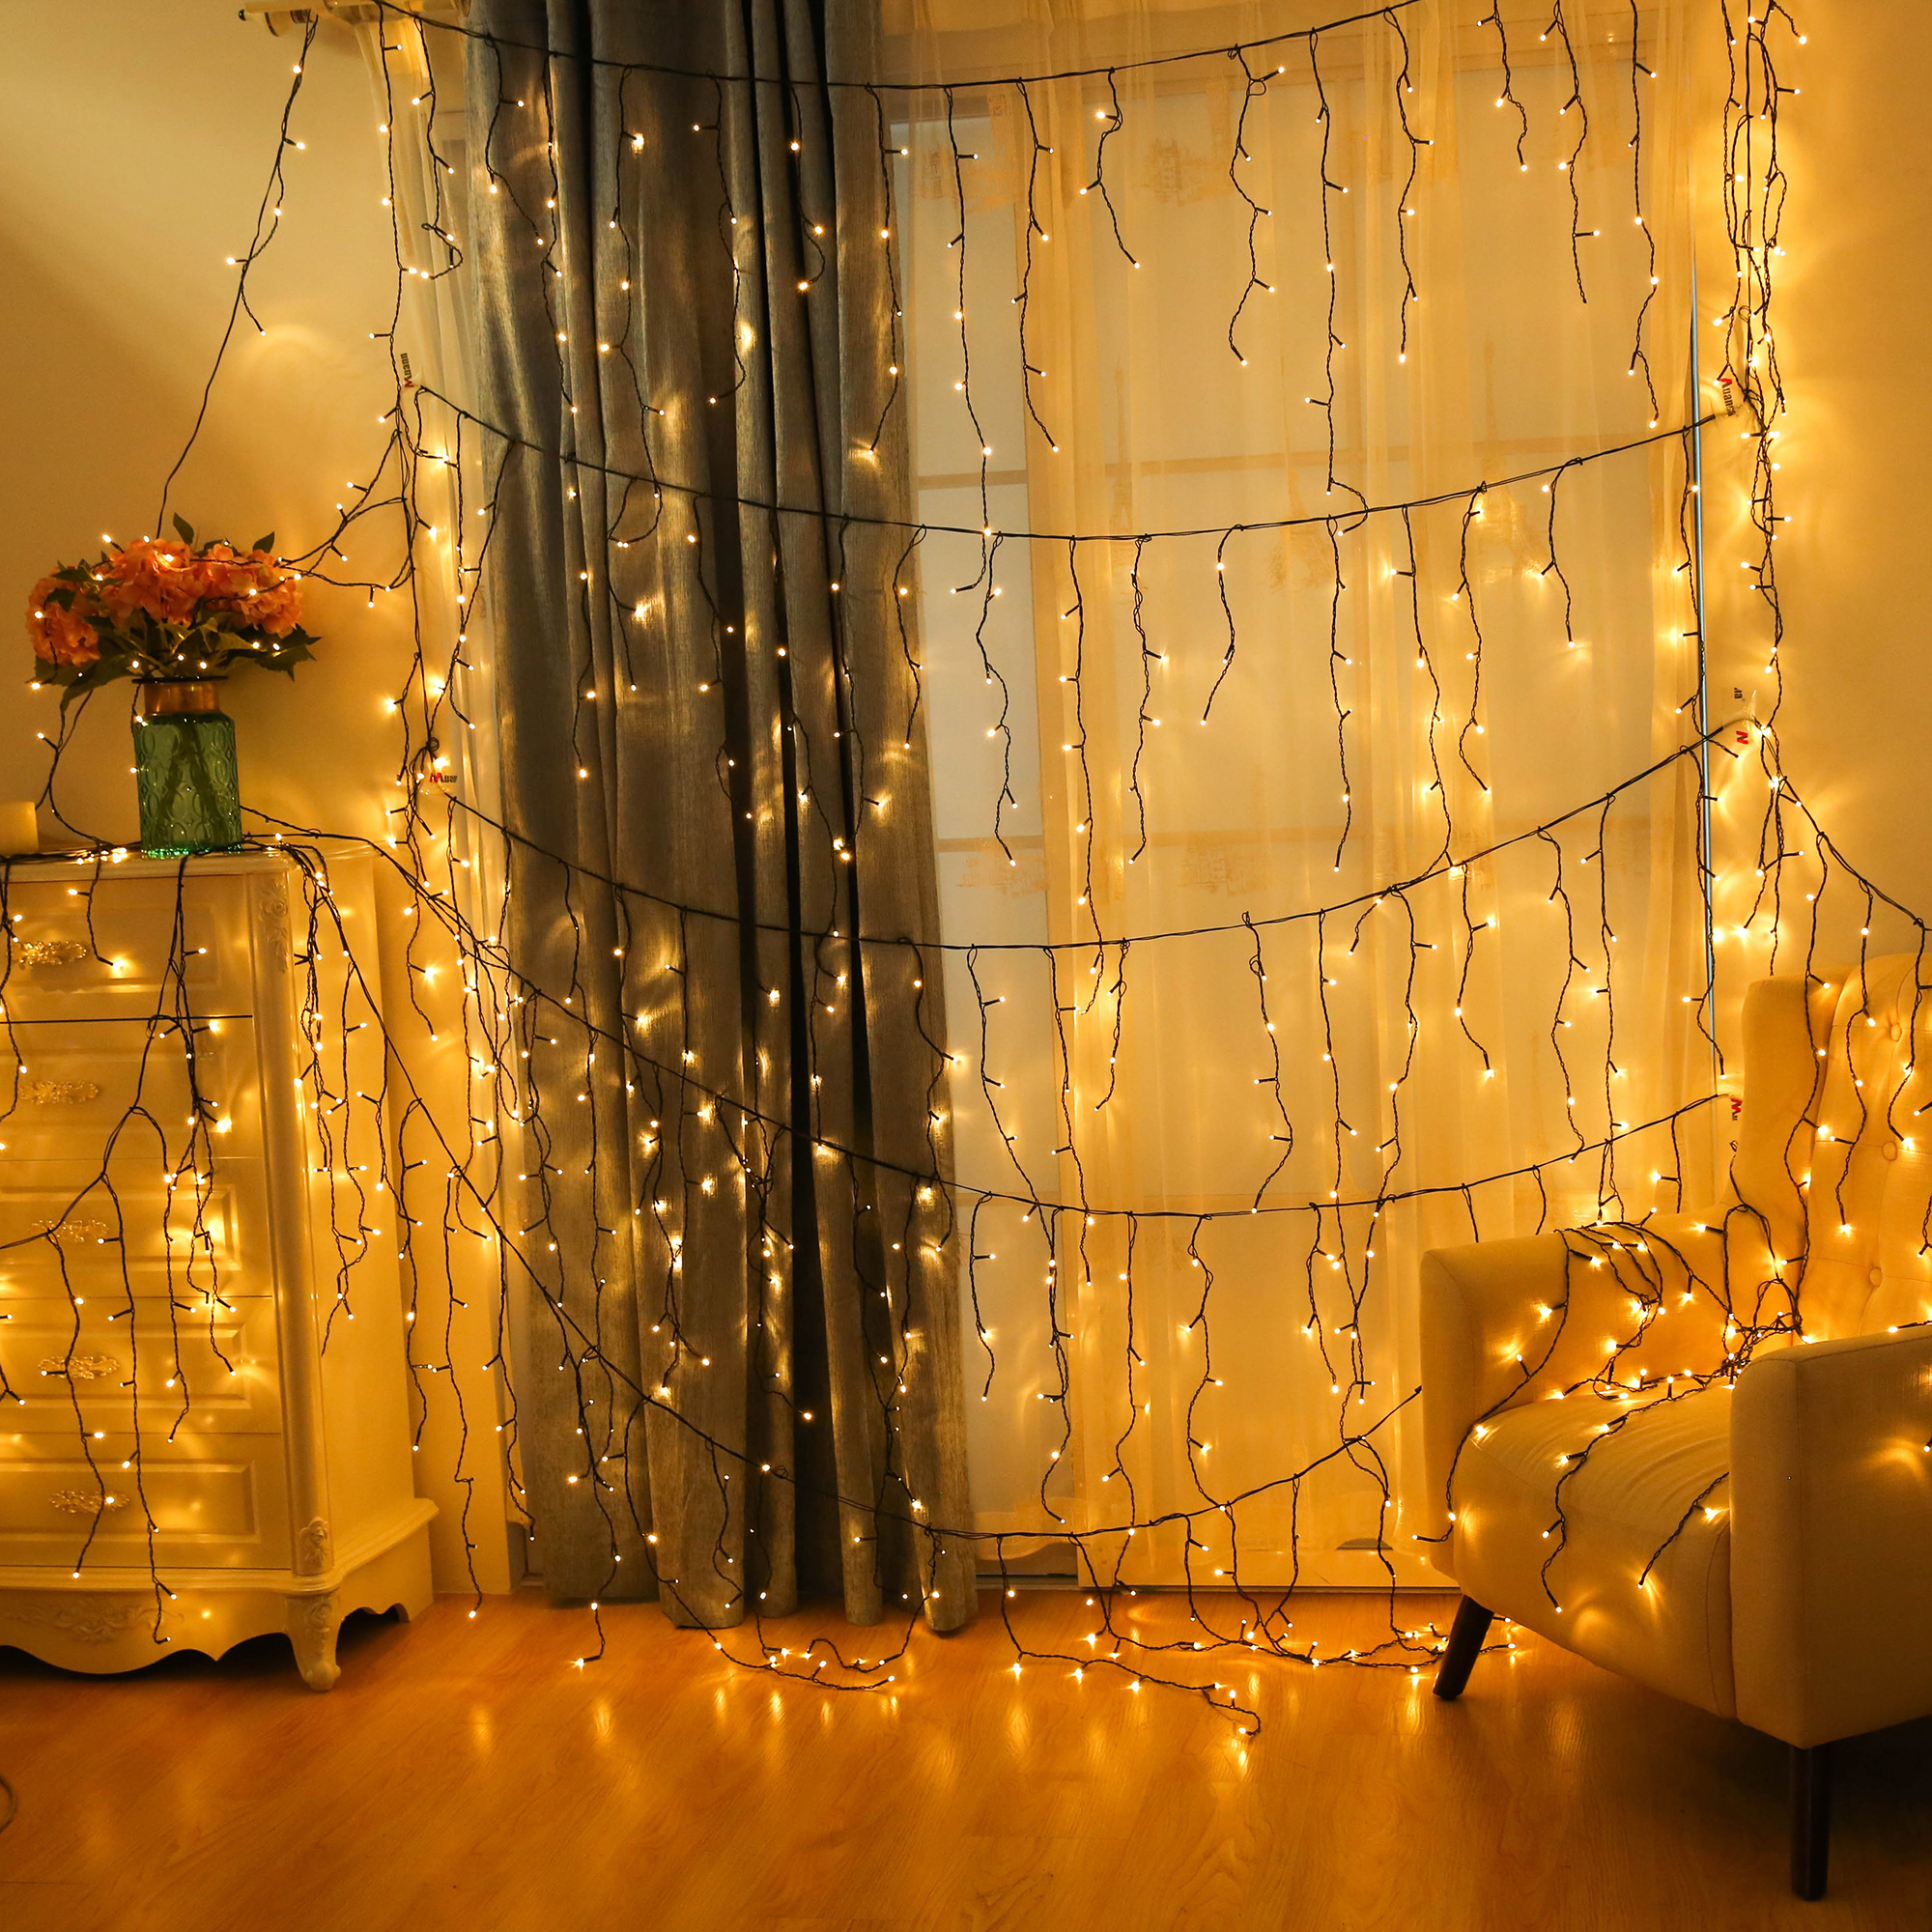 lichterkette eisregen led au en lichtervorhang weihnachten. Black Bedroom Furniture Sets. Home Design Ideas